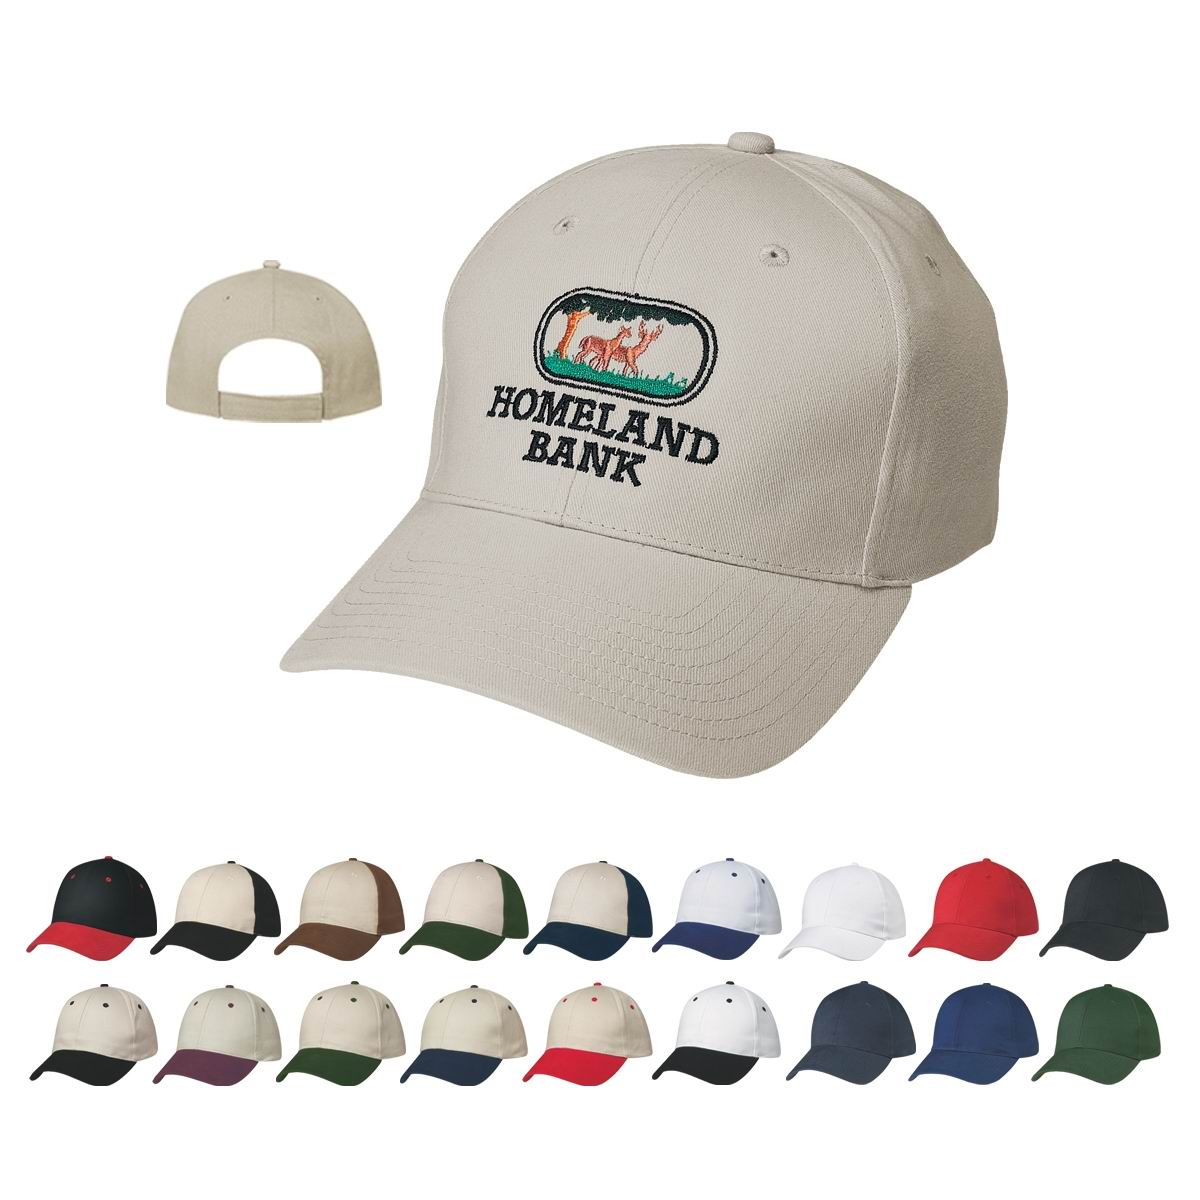 Price buster cap features 6 panel